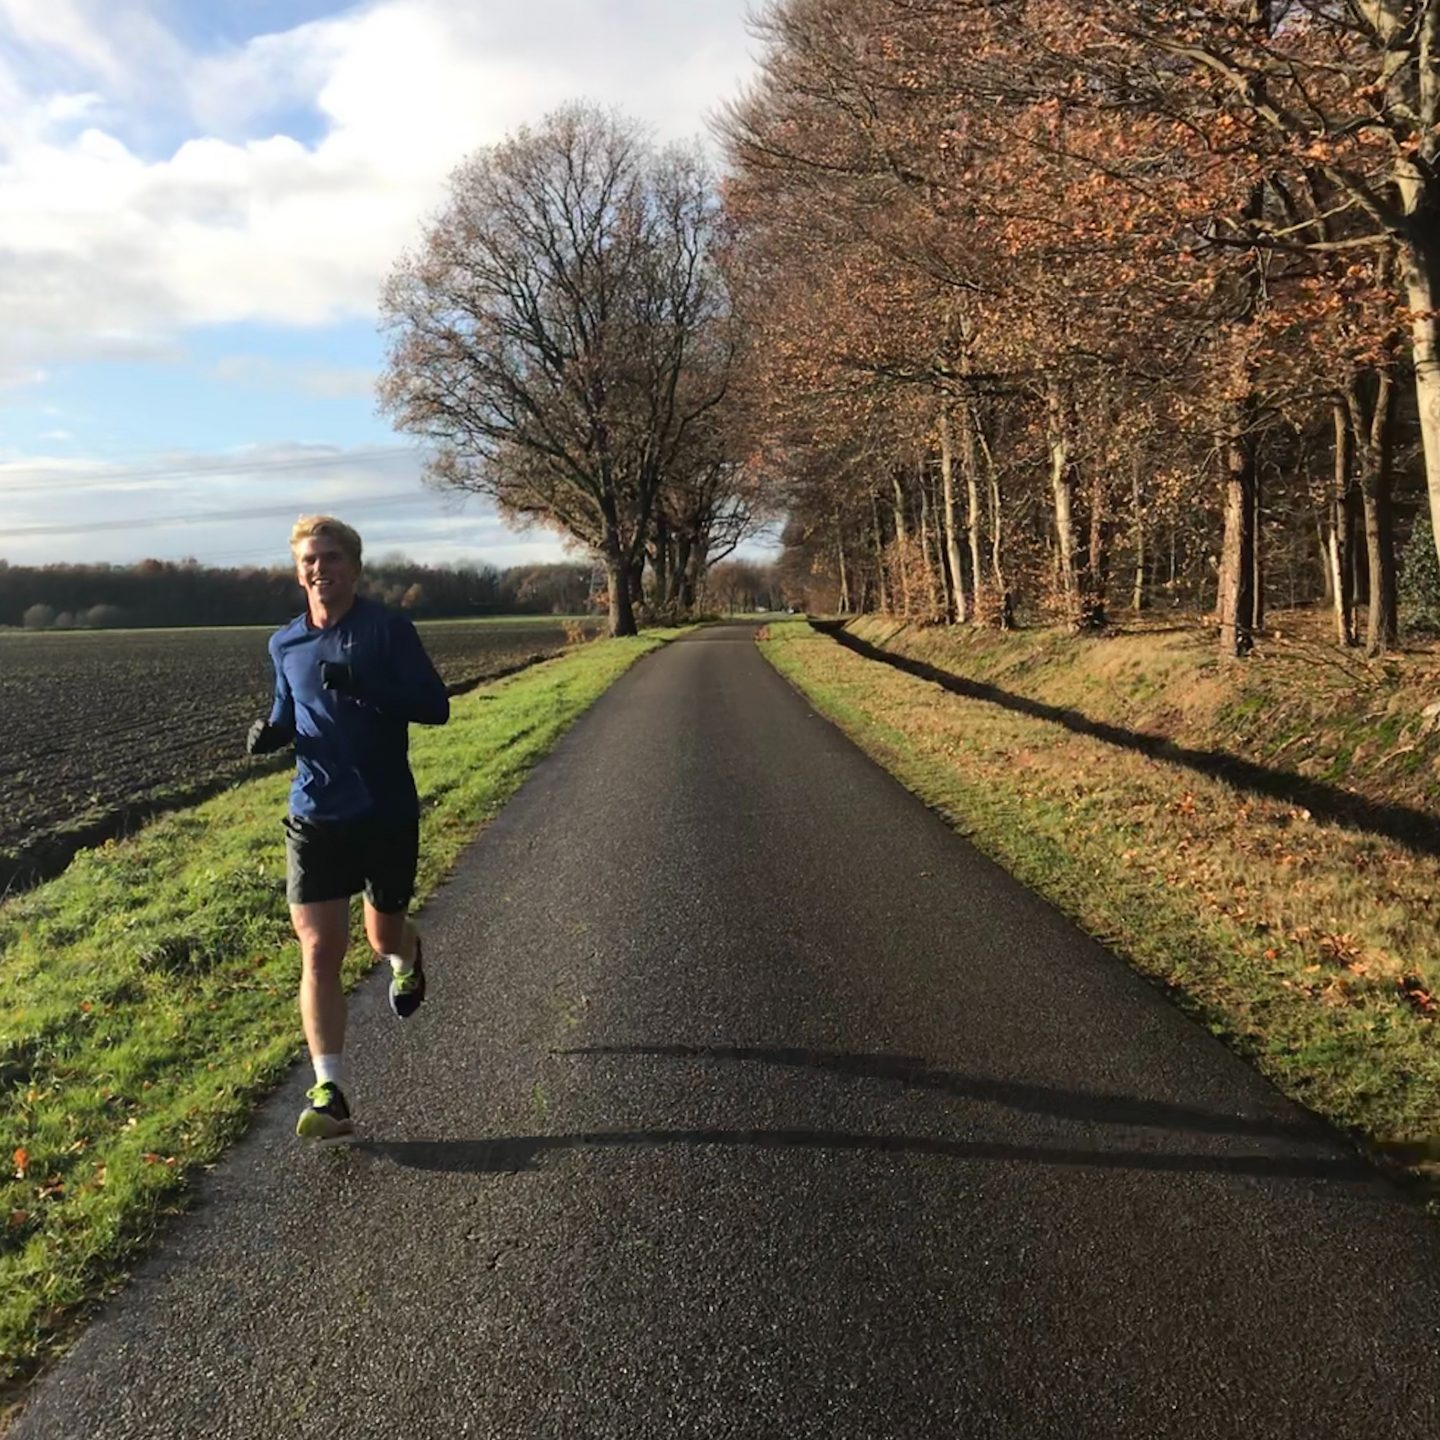 Halve van Egmond: # 12 kilometer is een begin